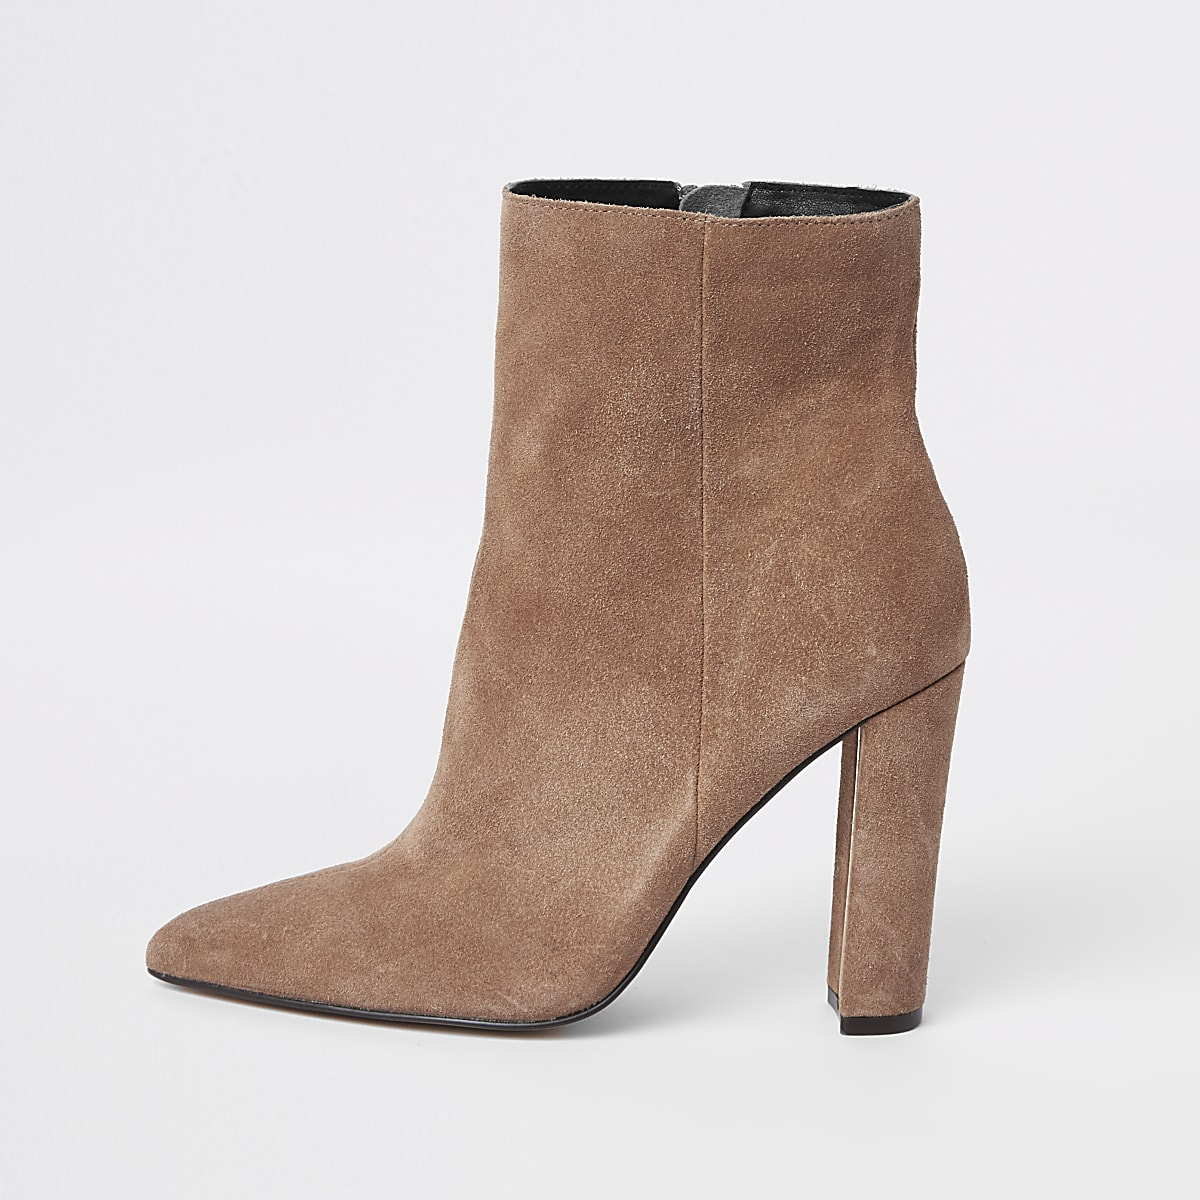 1c77d01344a Light brown suede pointed toe block heel boot - Boots - Shoes   Boots -  women